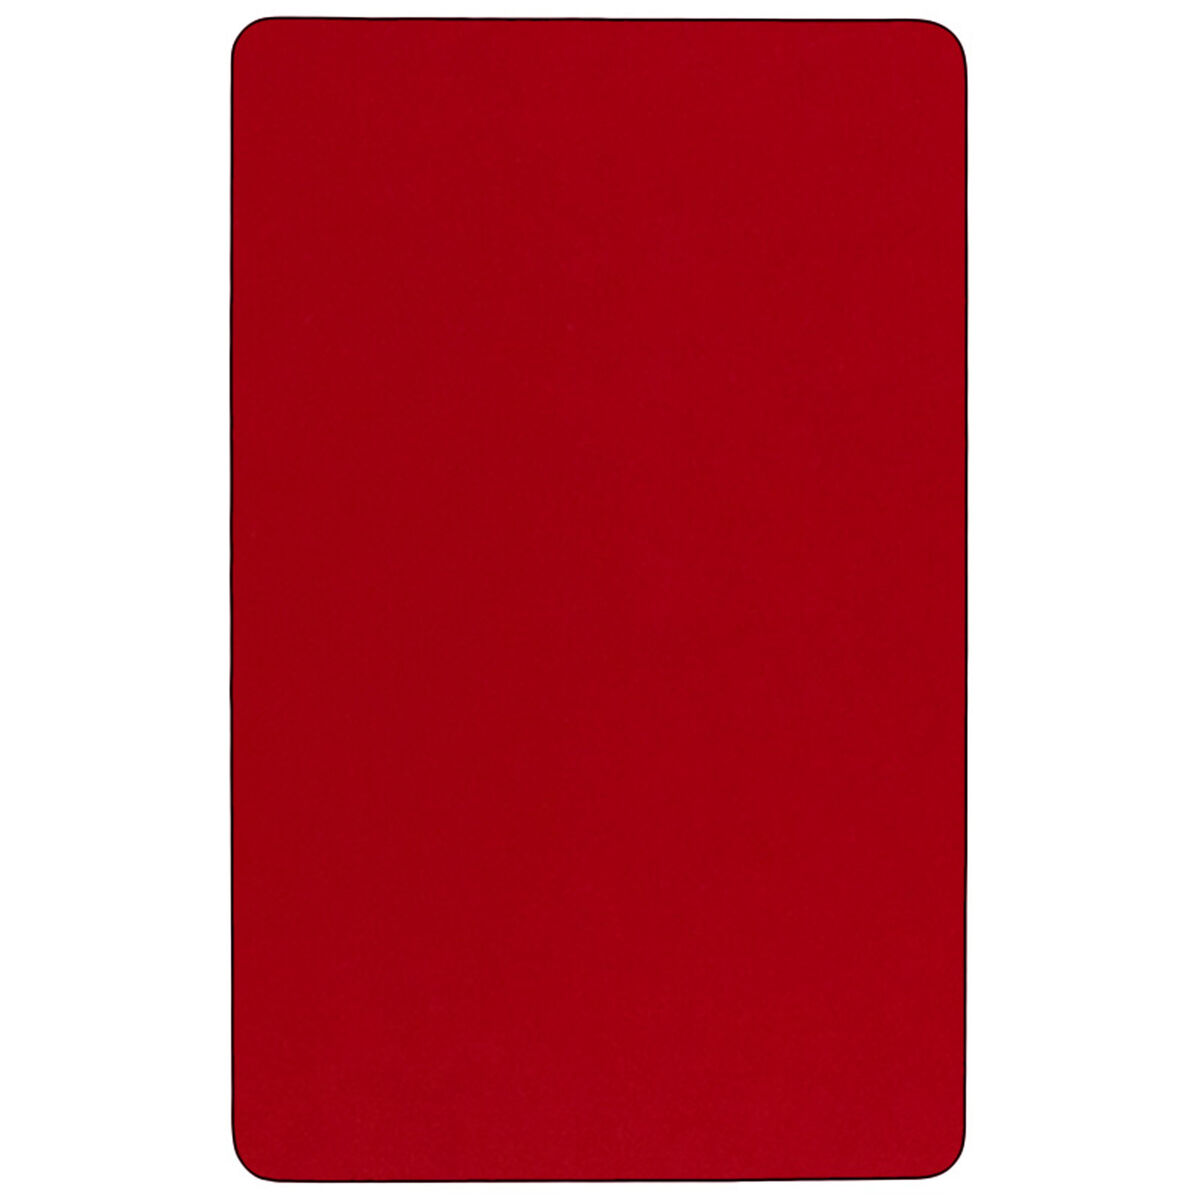 24x48 Rec Red Activity Table Xu A2448 Rec Red T P Gg